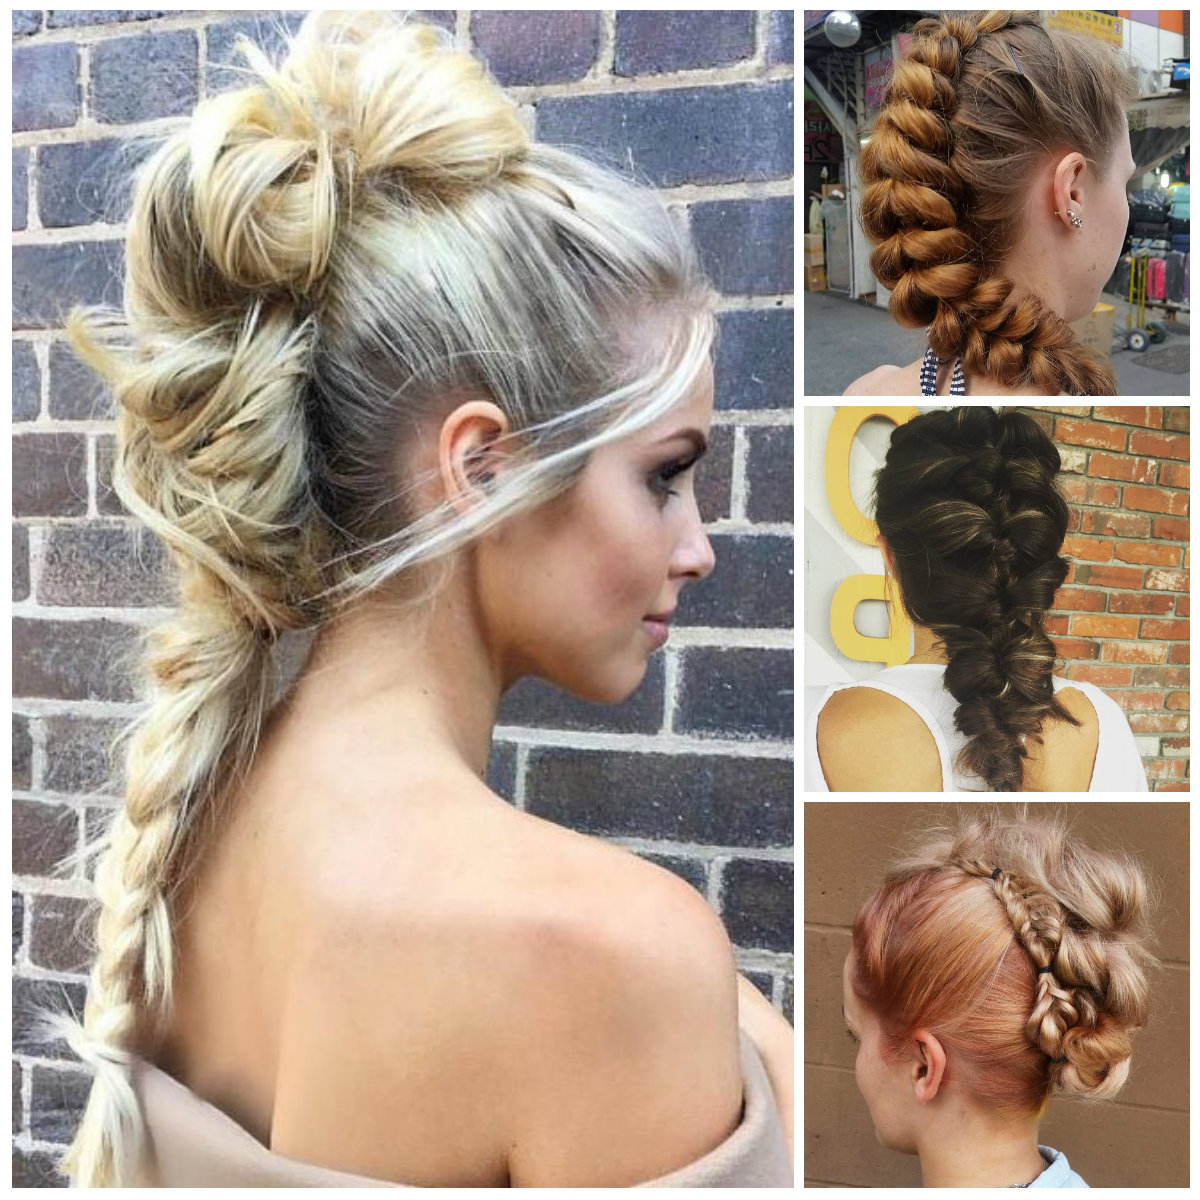 2019 Braided Mohawk Hairstyles – Haircuts And Hairstyles For 2019 Intended For Well Known Cool Mohawk Updo Hairstyles (View 2 of 20)